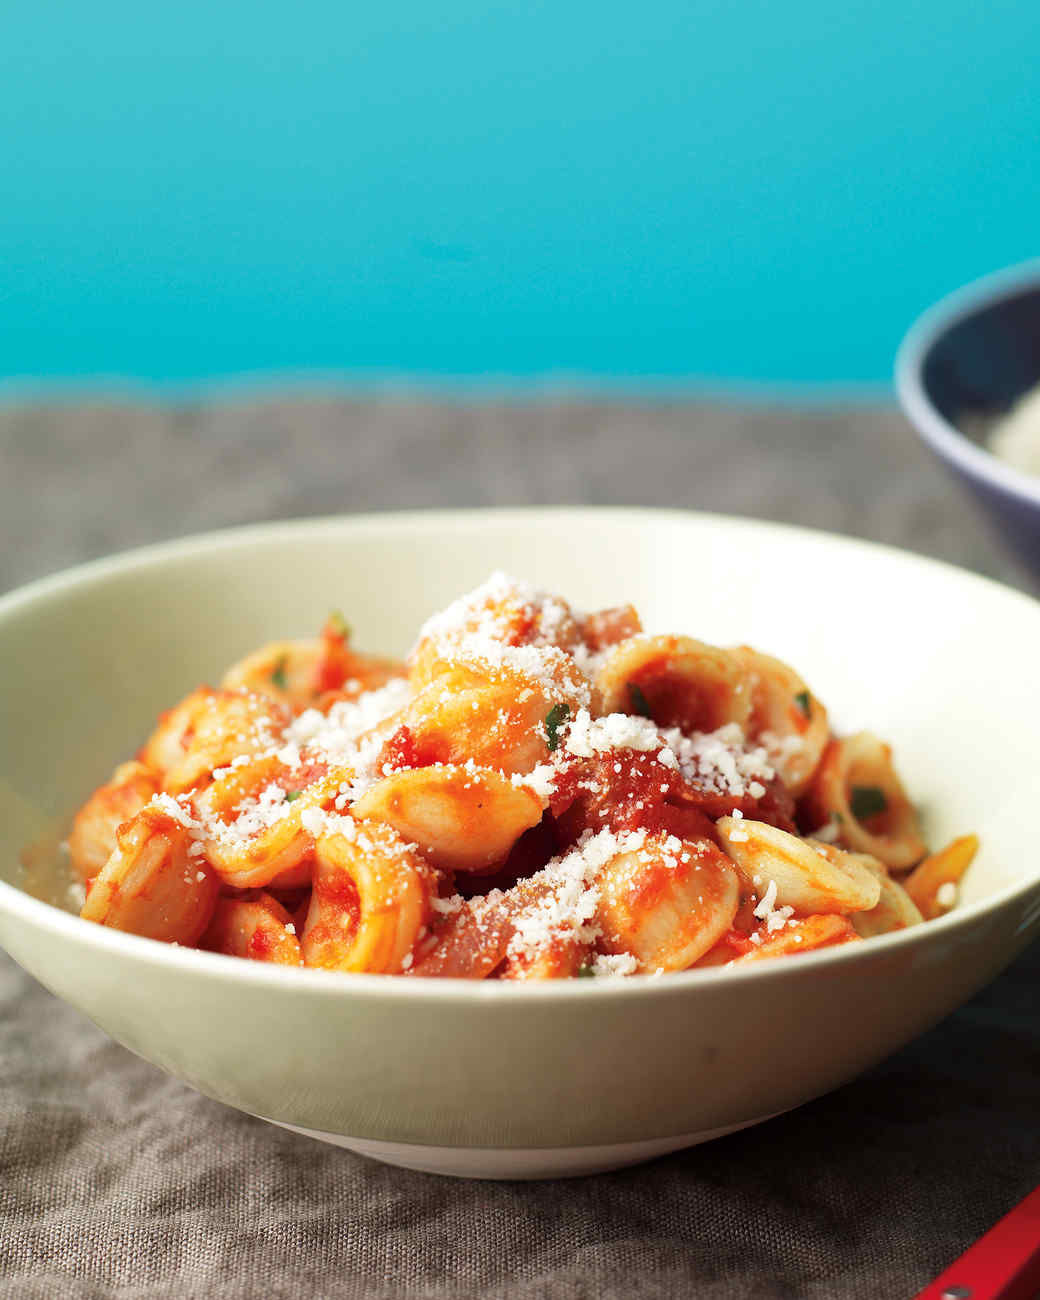 Orecchiette with Bacon and Tomato Sauce